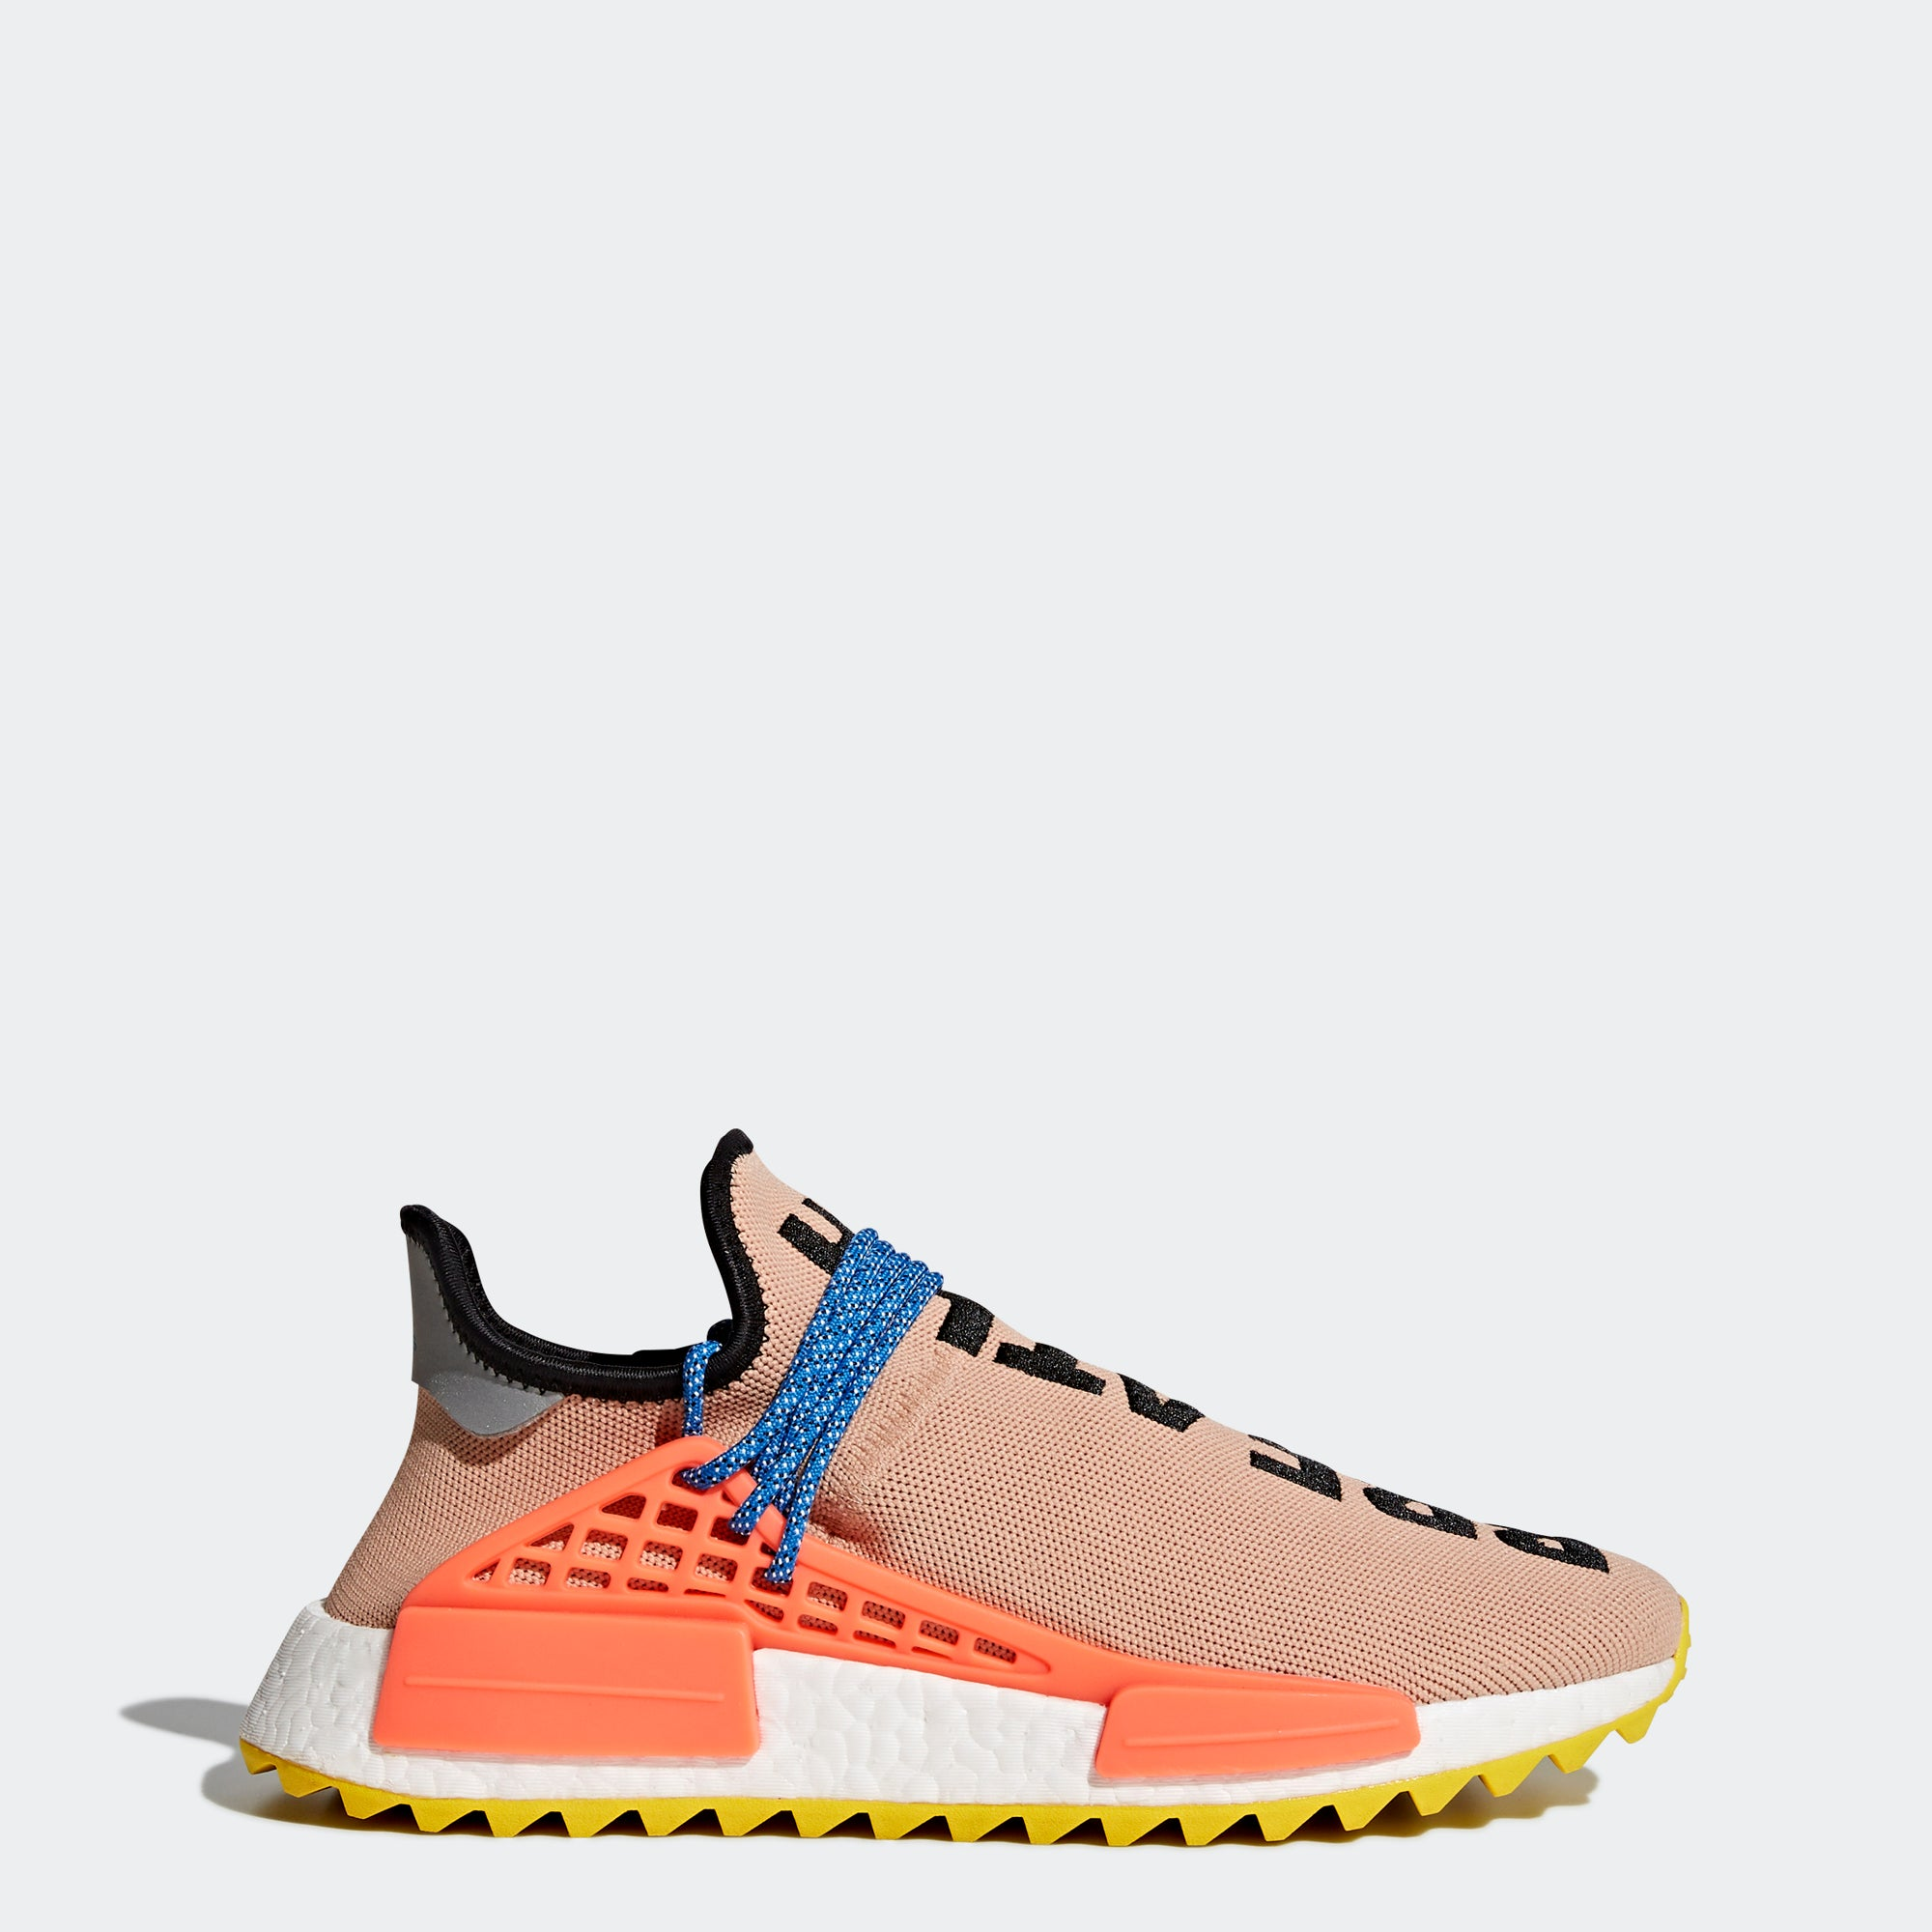 4f2833e7b Men s adidas Originals Pharrell Williams x NMD Human Race AC7361 ...